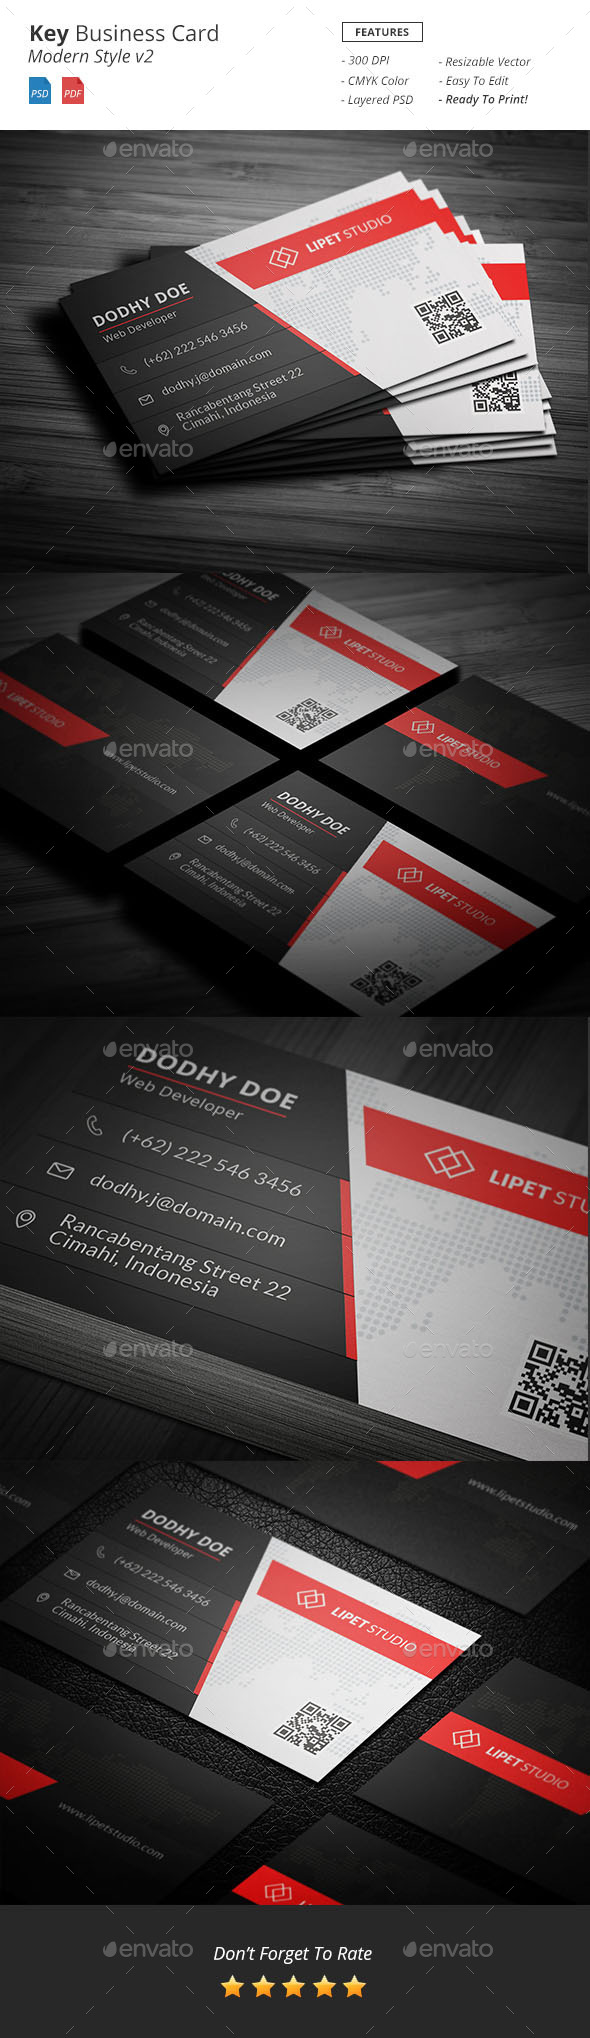 GraphicRiver Key Modern Business Card Template v2 9685121